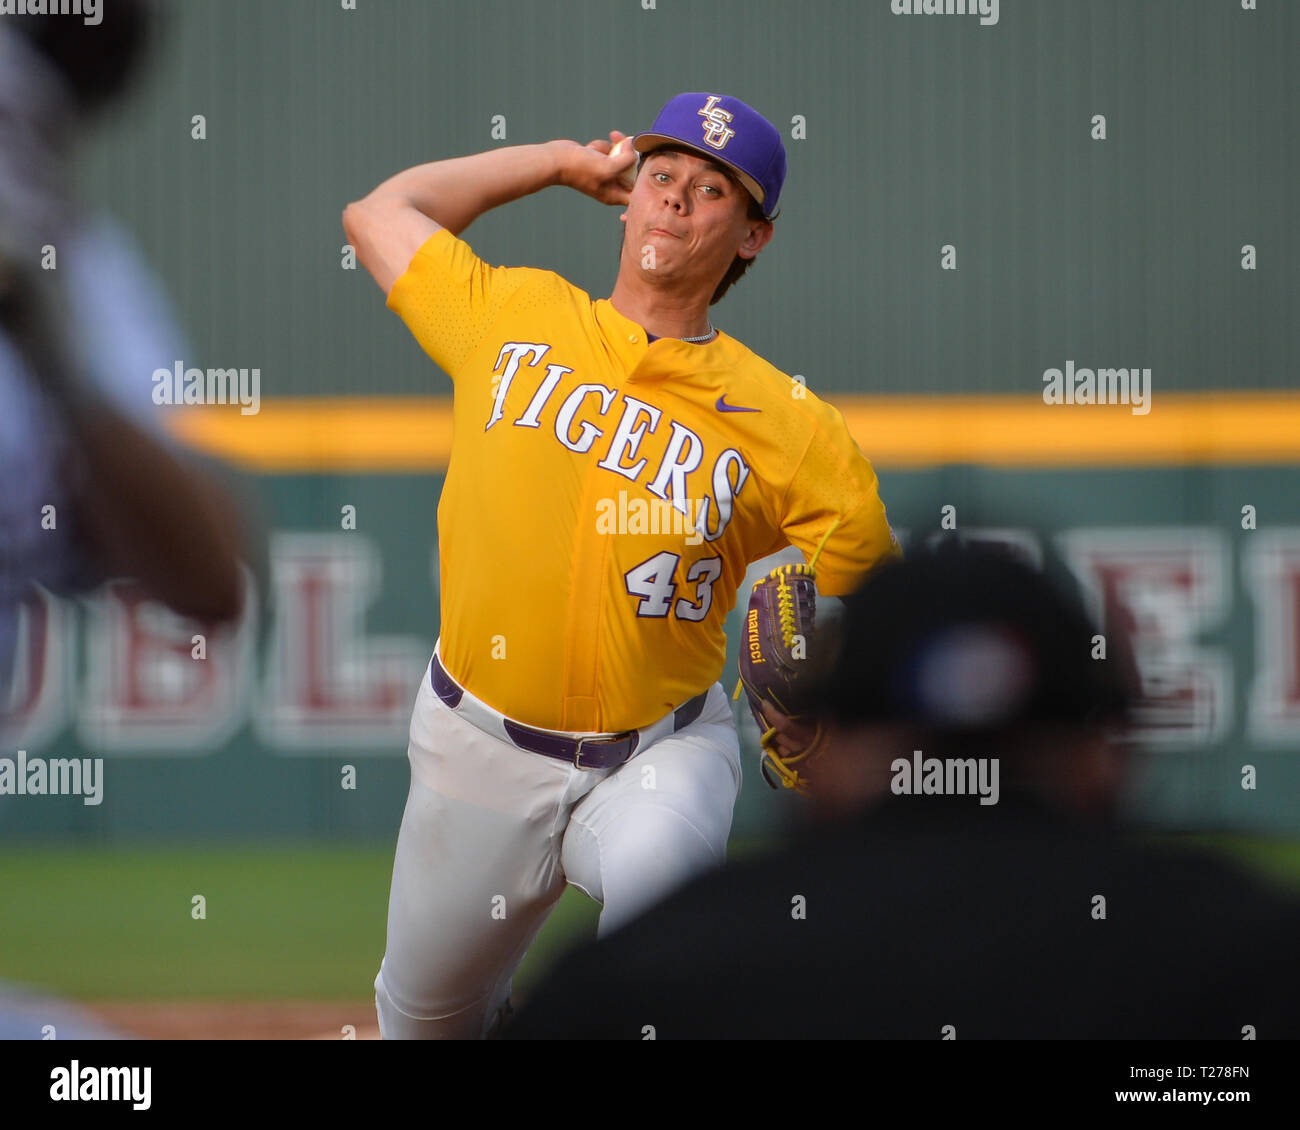 Mississippi, USA.  30th Mar, 2019. LSU pitcher, Todd Peterson (43), in action during the NCAA baseball game between the LSU Tigers and the Mississippi State Bulldogs at Dudy Noble Field in Starkville, MS. LSU defeated Mississippi State, 11-2. Kevin Langley/Sports South Media/CSM/Alamy Live News Stock Photo